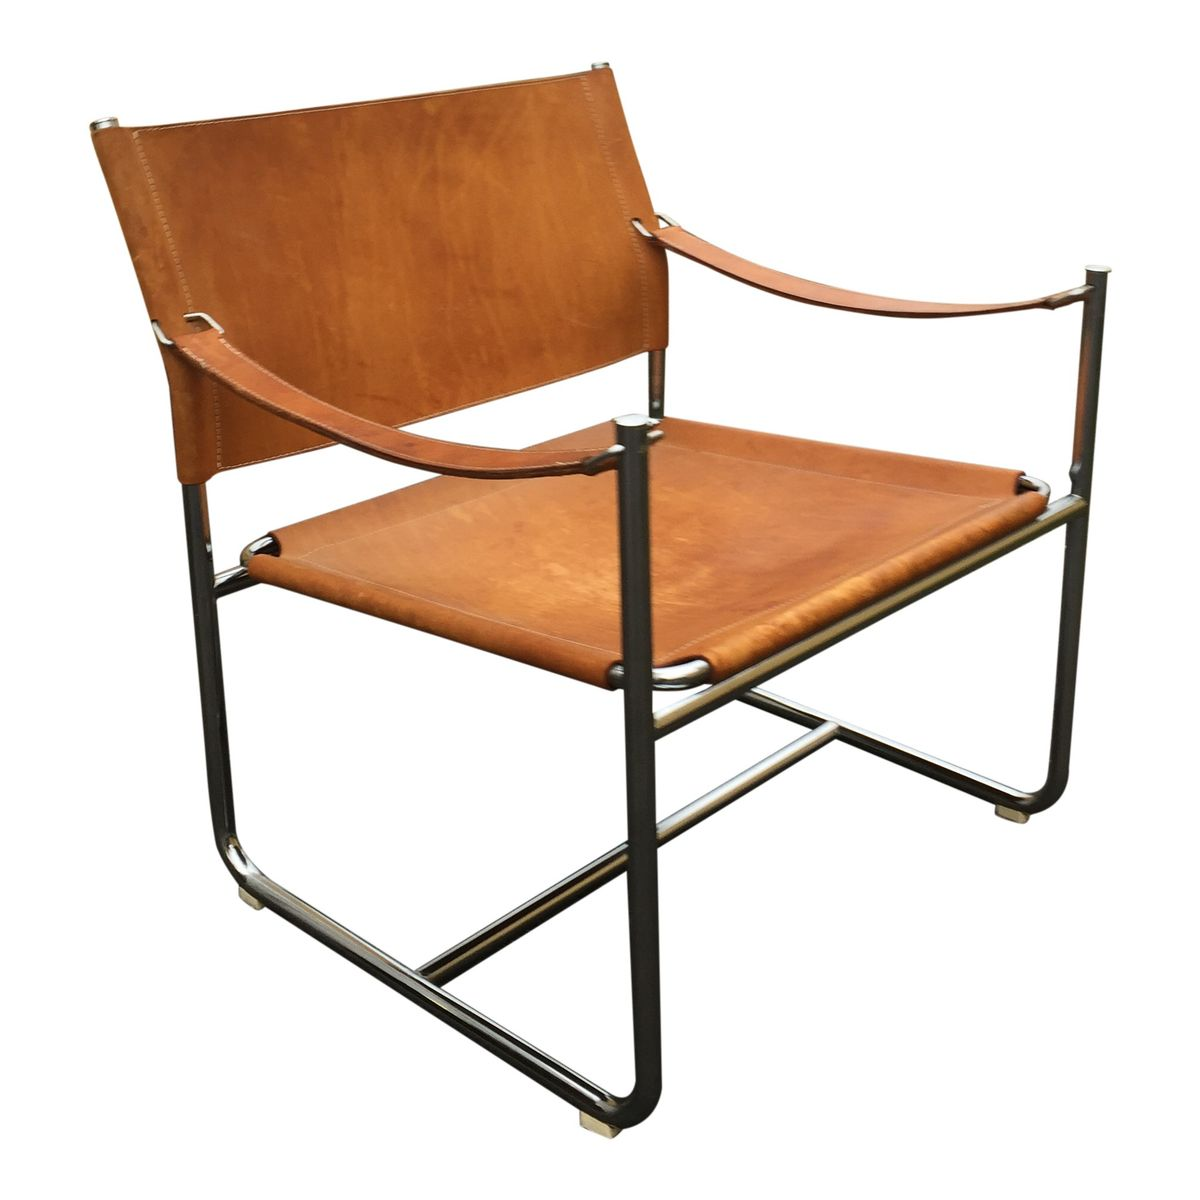 Safari Chair Leather Safari Chair By Karin Mobring For Ikea For Sale At